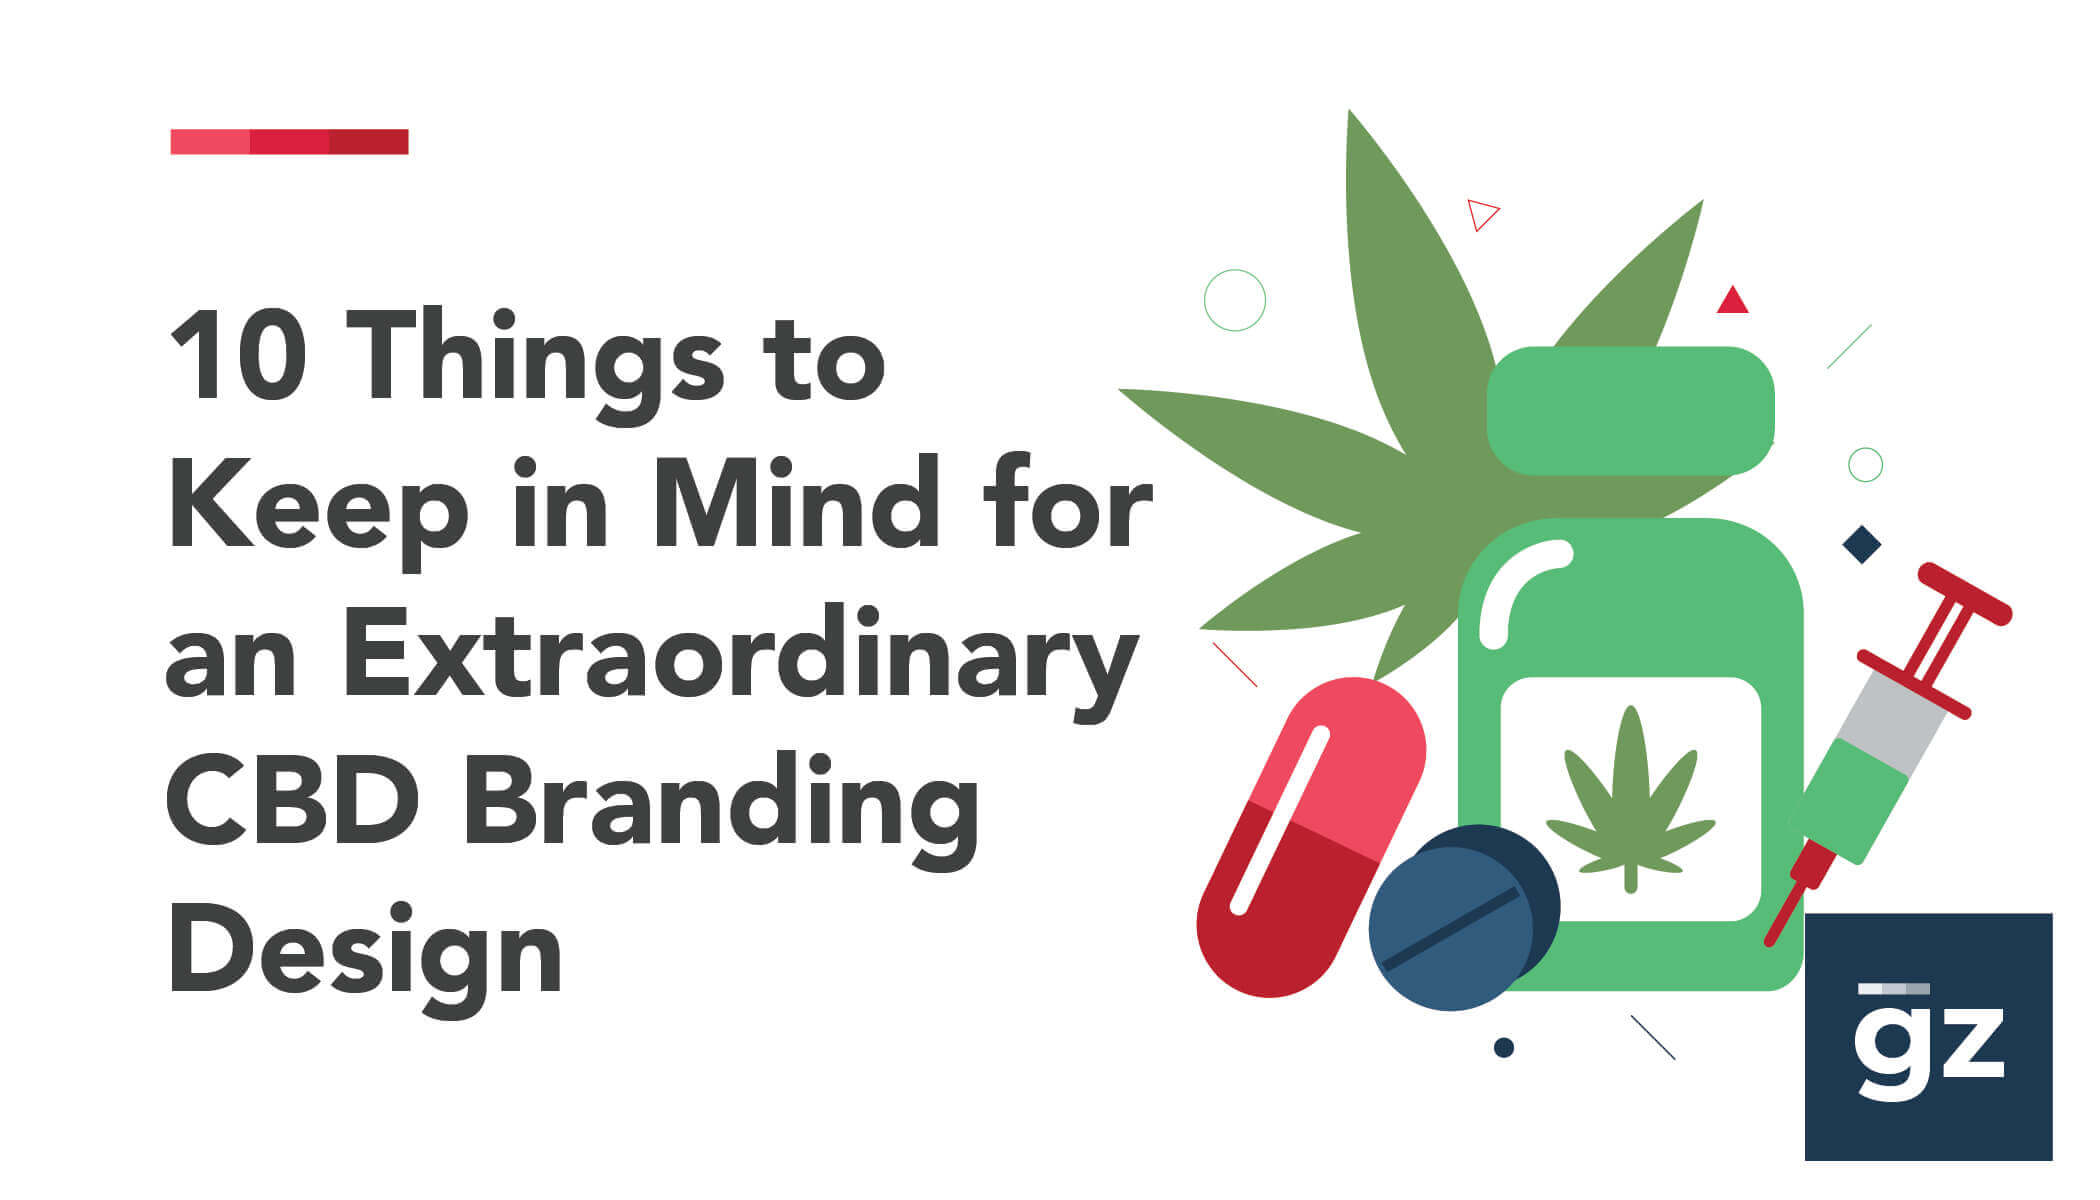 10 Things to Keep in Mind for an Extraordinary CBD Branding Design